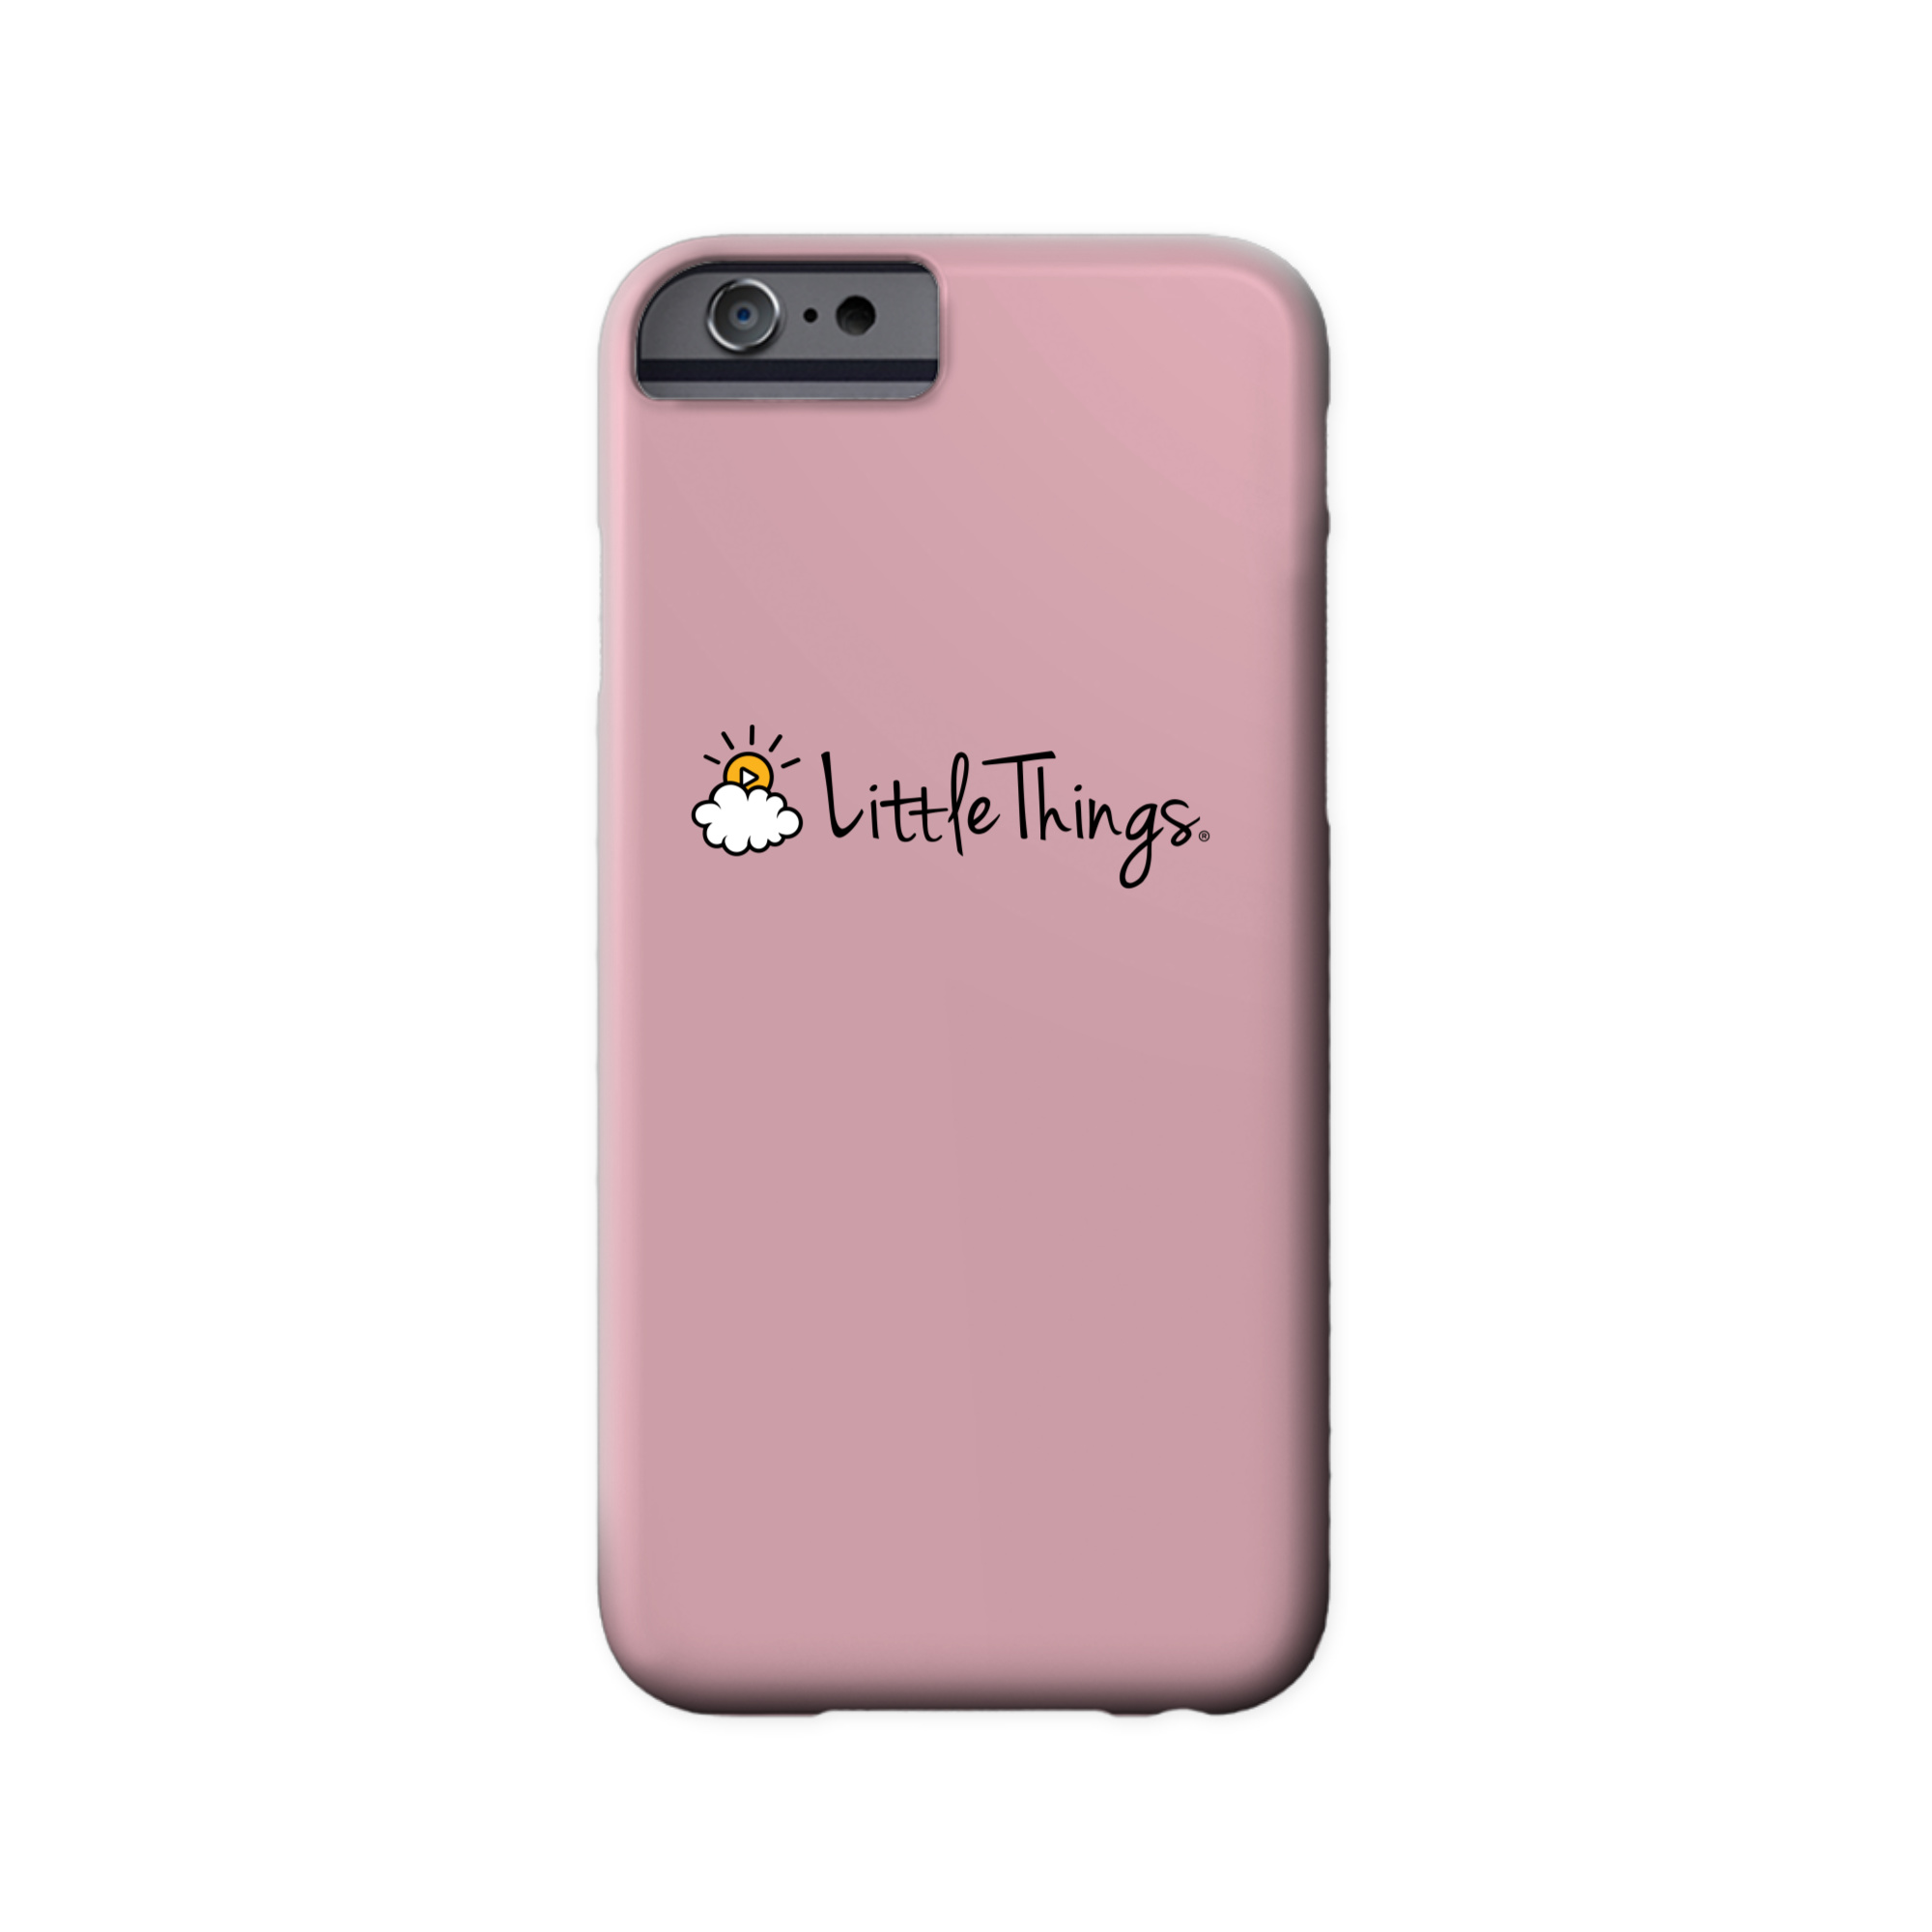 LittleThings Phone Case